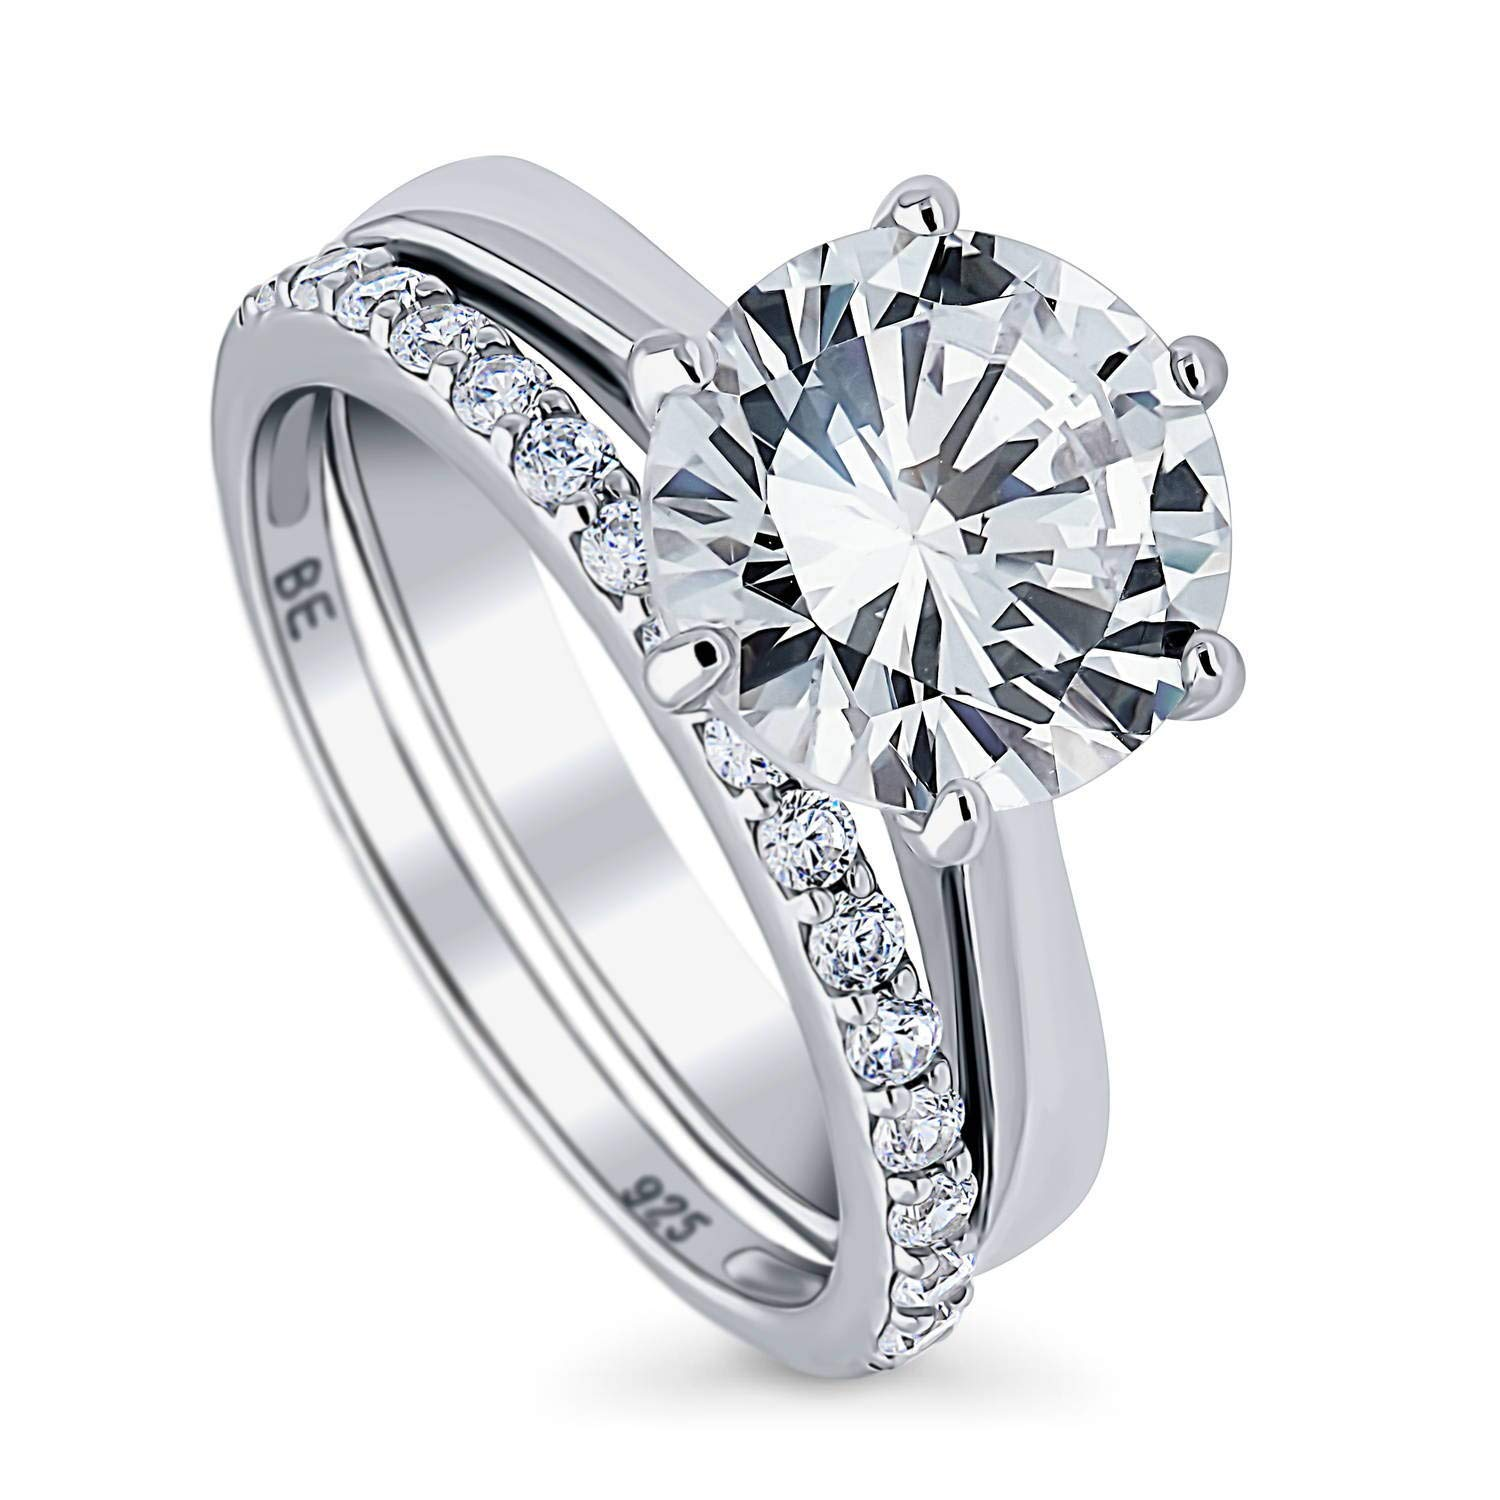 BERRICLE Rhodium Plated Sterling Silver Round Cubic Zirconia CZ Solitaire Engagement Wedding Ring Set 4.19 CTW Size 10